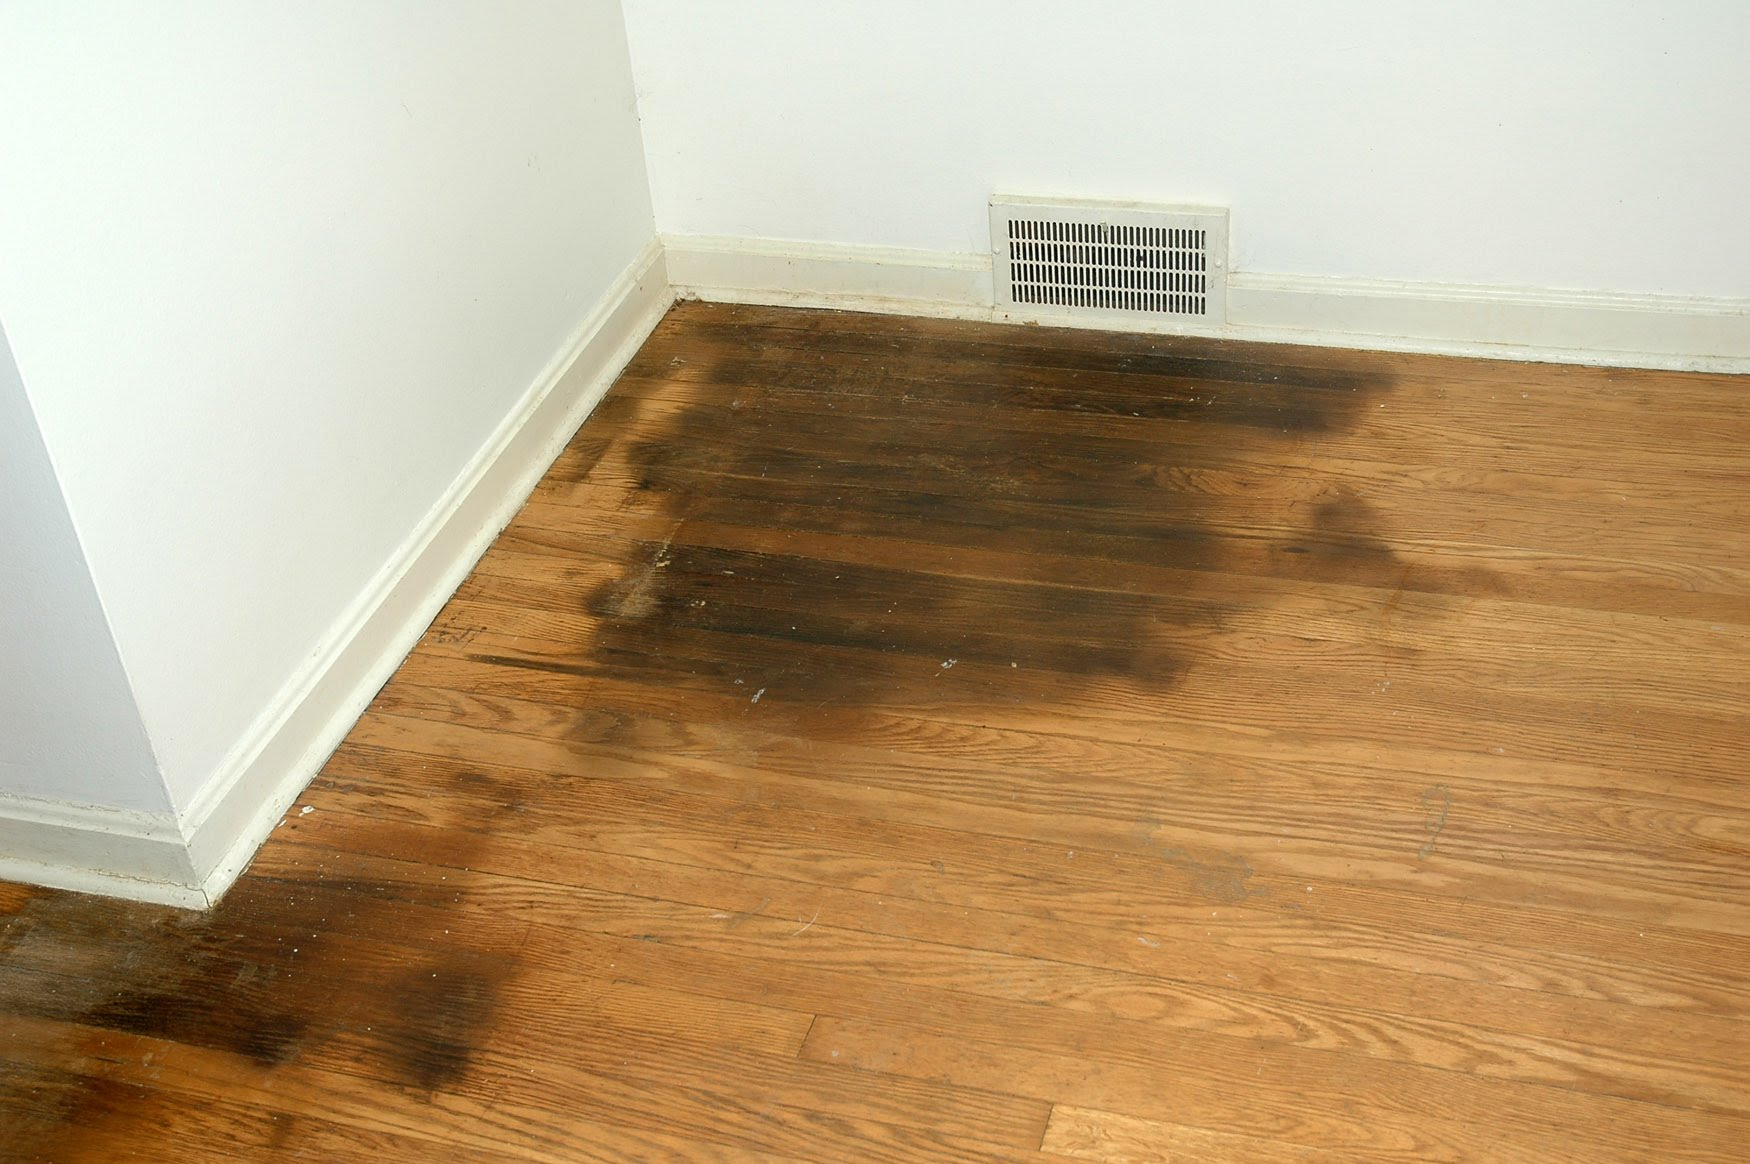 How To Get Urine Smell Out Of Clothes How To Remove Urine From Hardwood Floors Northside Floors